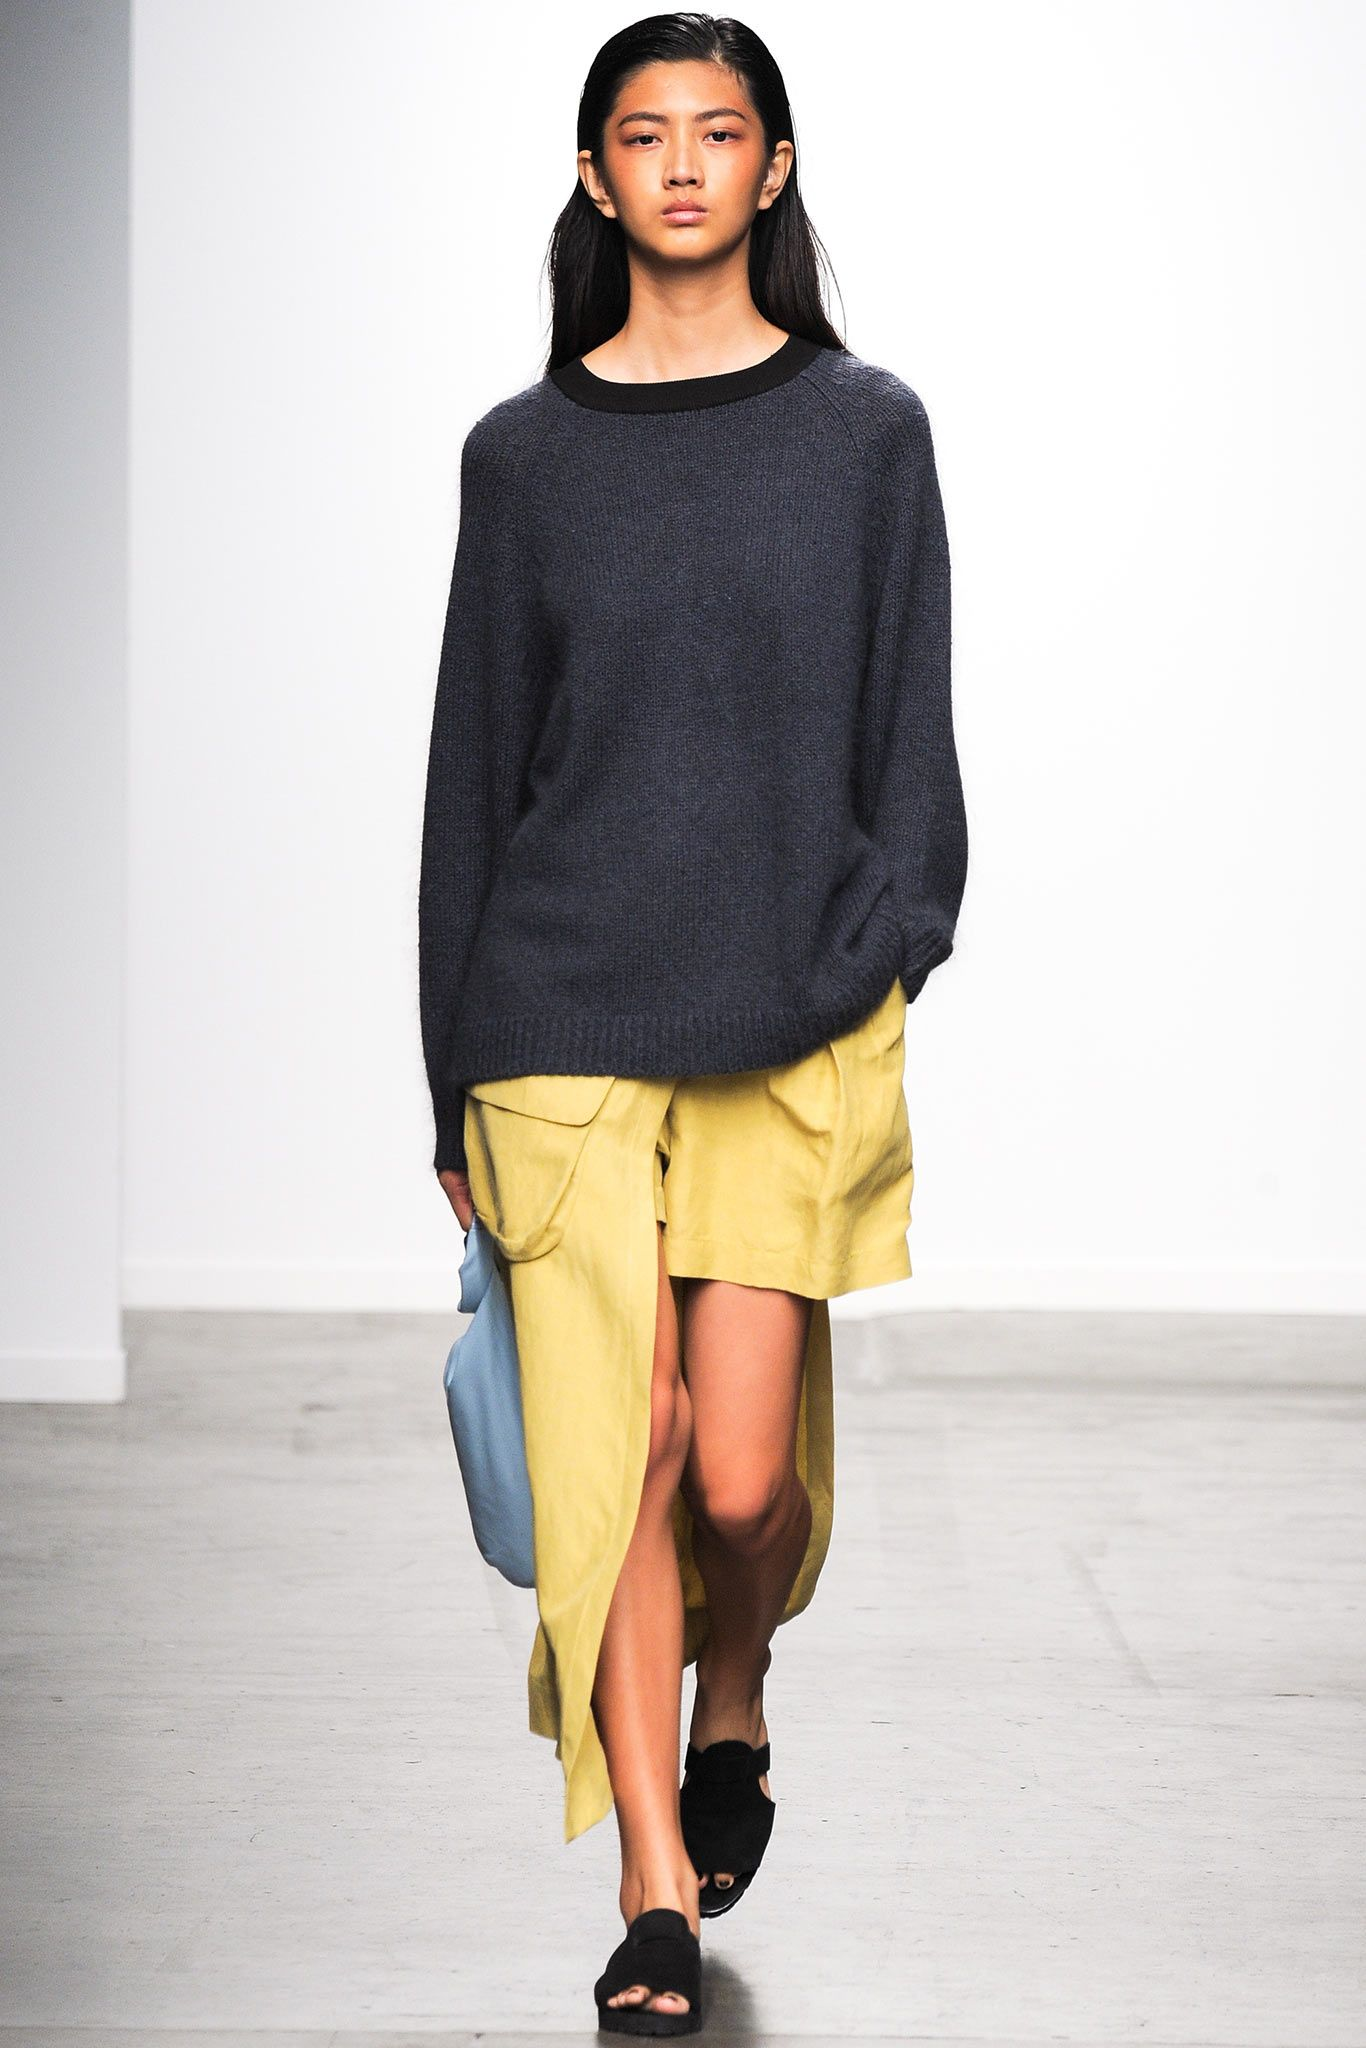 Creatures of Comfort Spring 2015 Ready-to-Wear - Collection - Gallery - Style.com